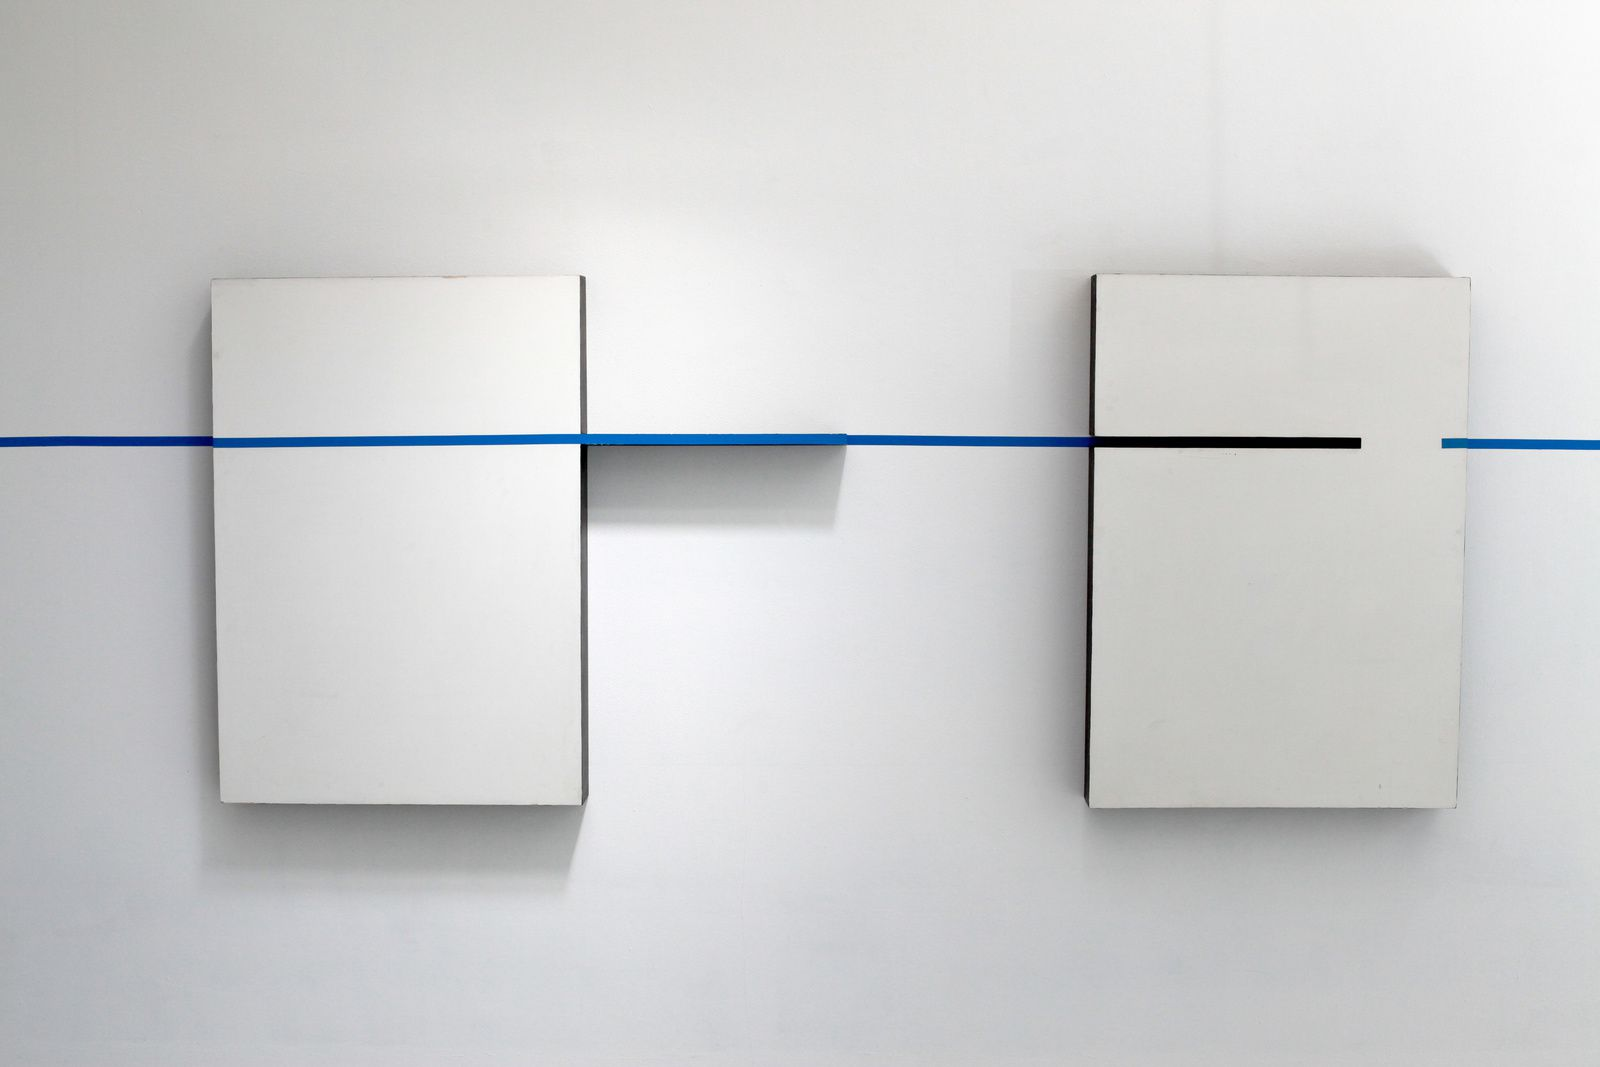 """Intervention"", 1994 de Edward Krasinski - Courtesy Galerie Loevenbruck © Photo Éric Simon"